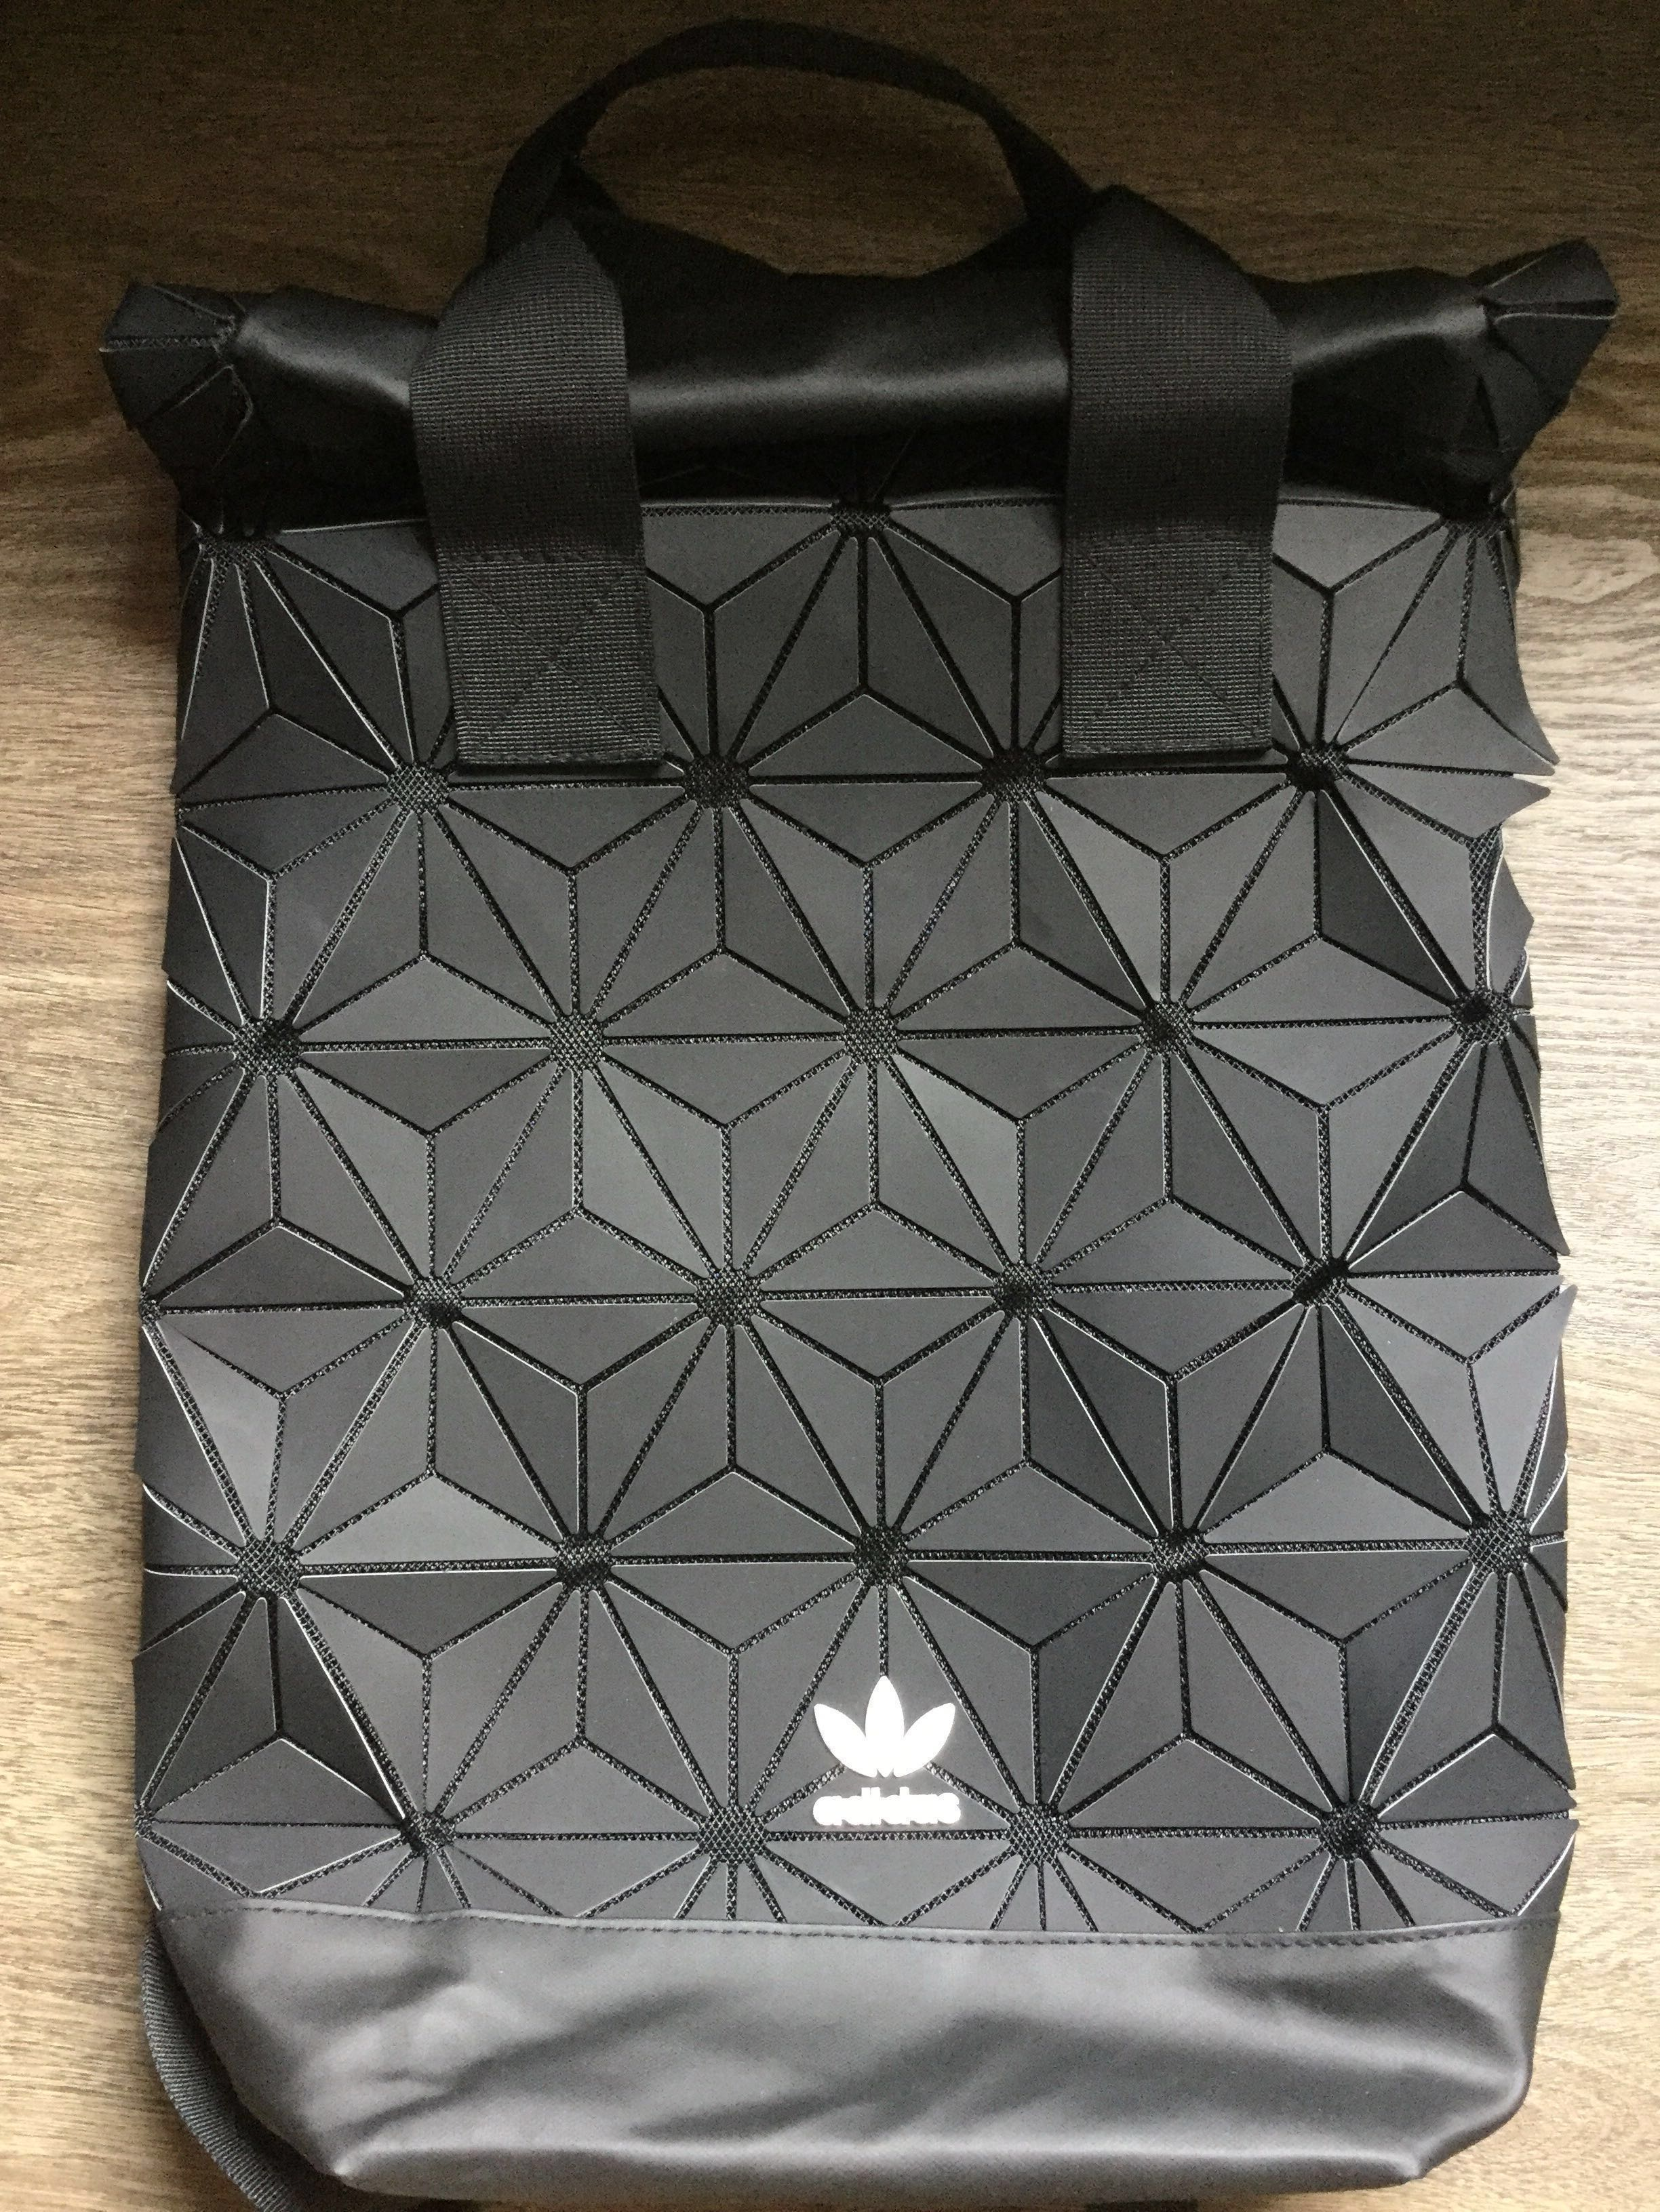 CHEAPEST INSTOCK Adidas 3D 2018 Roll Top Backpack 5d62abd3c0a15